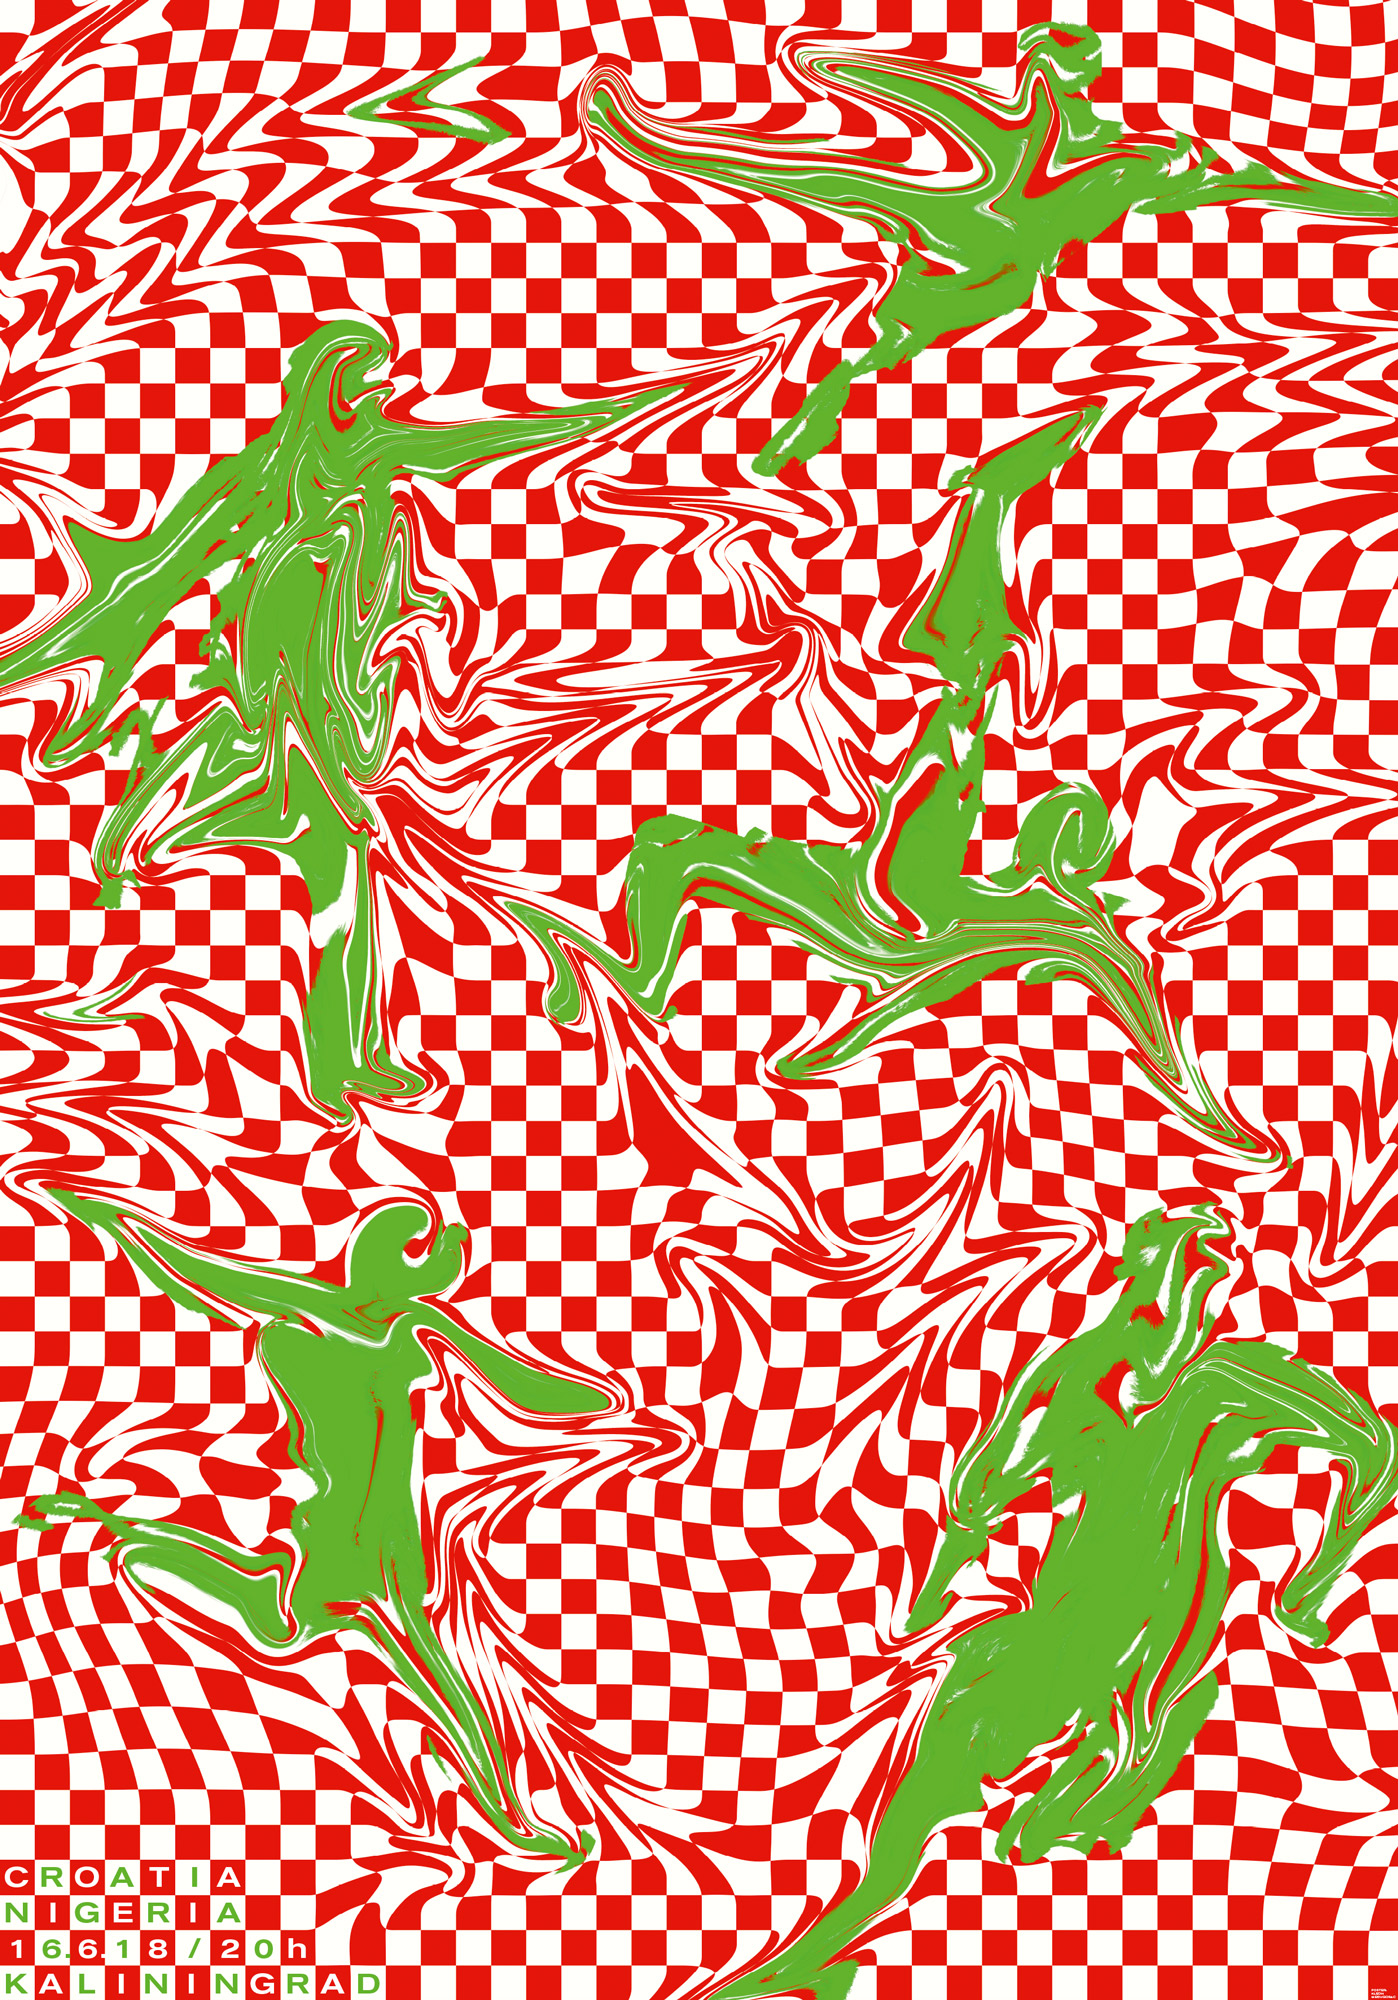 "Kleon Medugorac Poster for Tschuttiheftli ""Croatia vs Nigeria"""